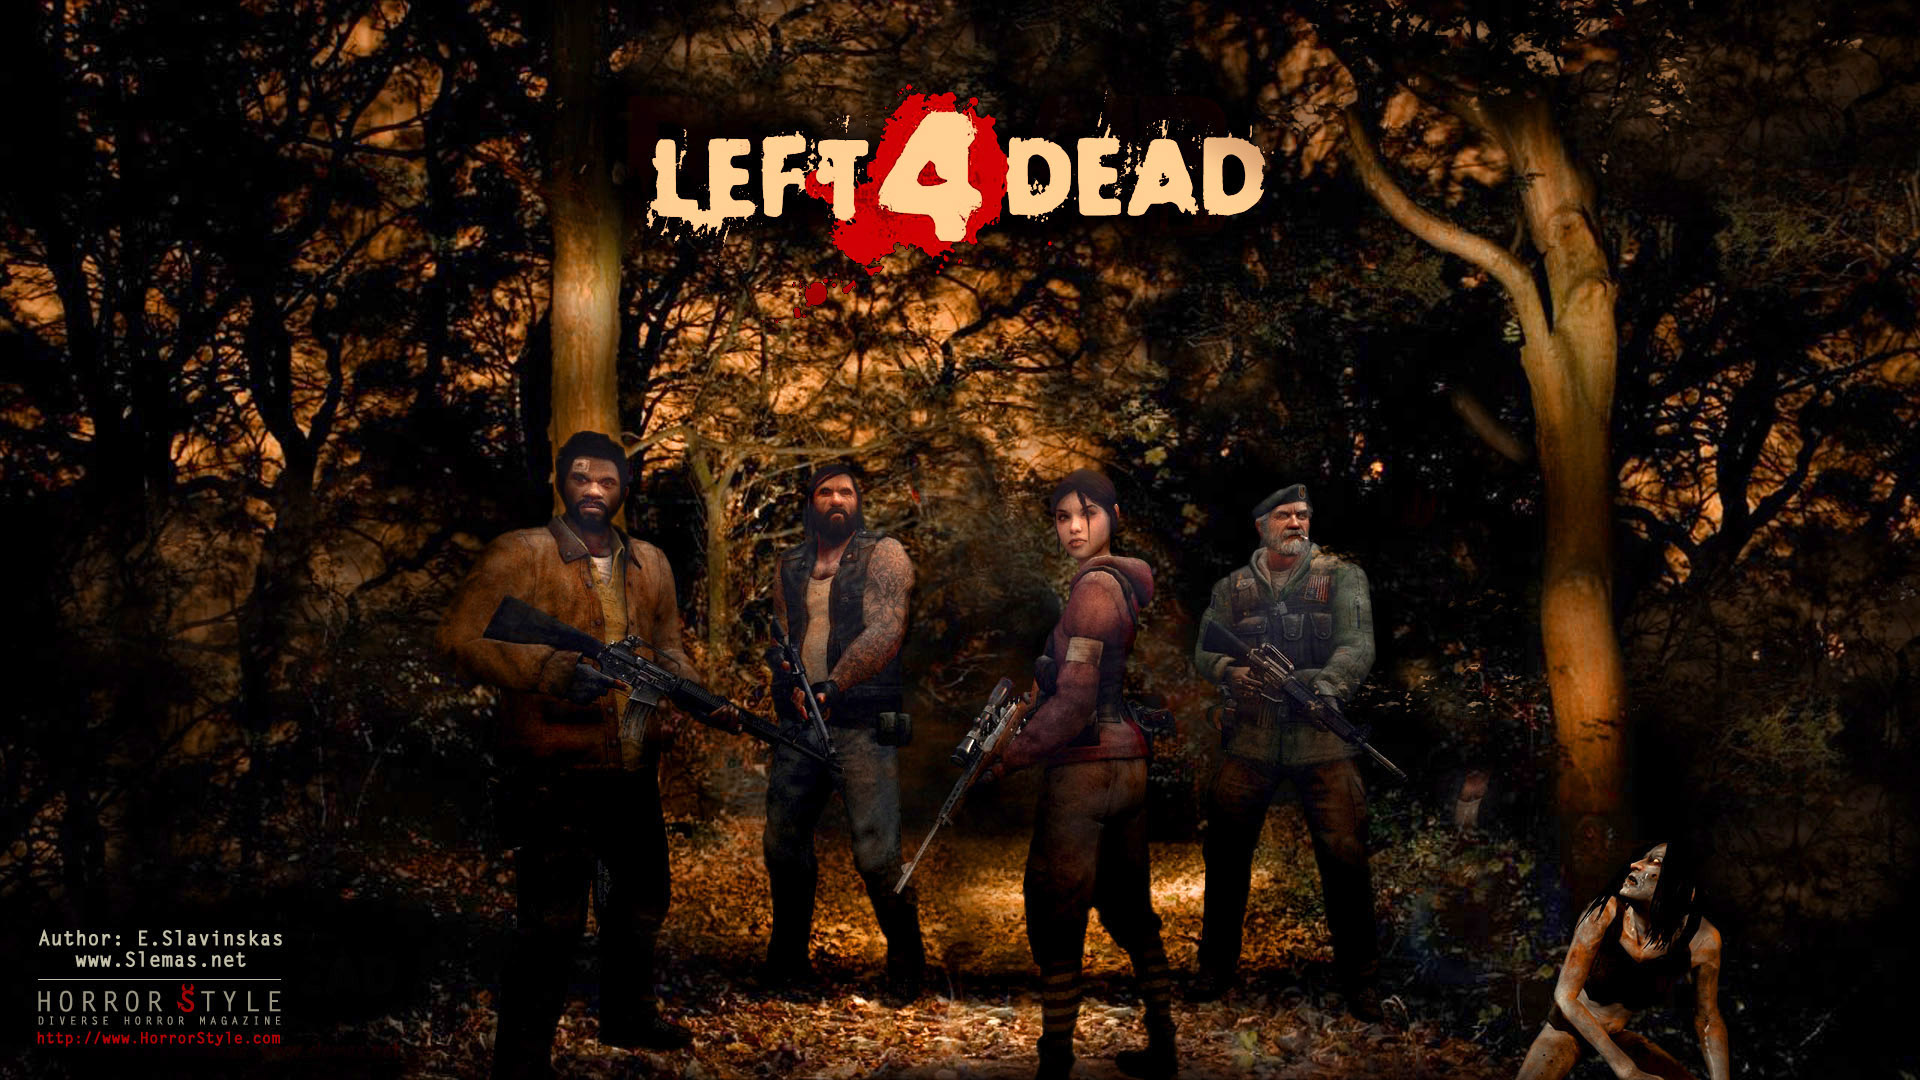 Free Download Left 4 Dead 2 Wallpaper Is A Great Wallpaper For